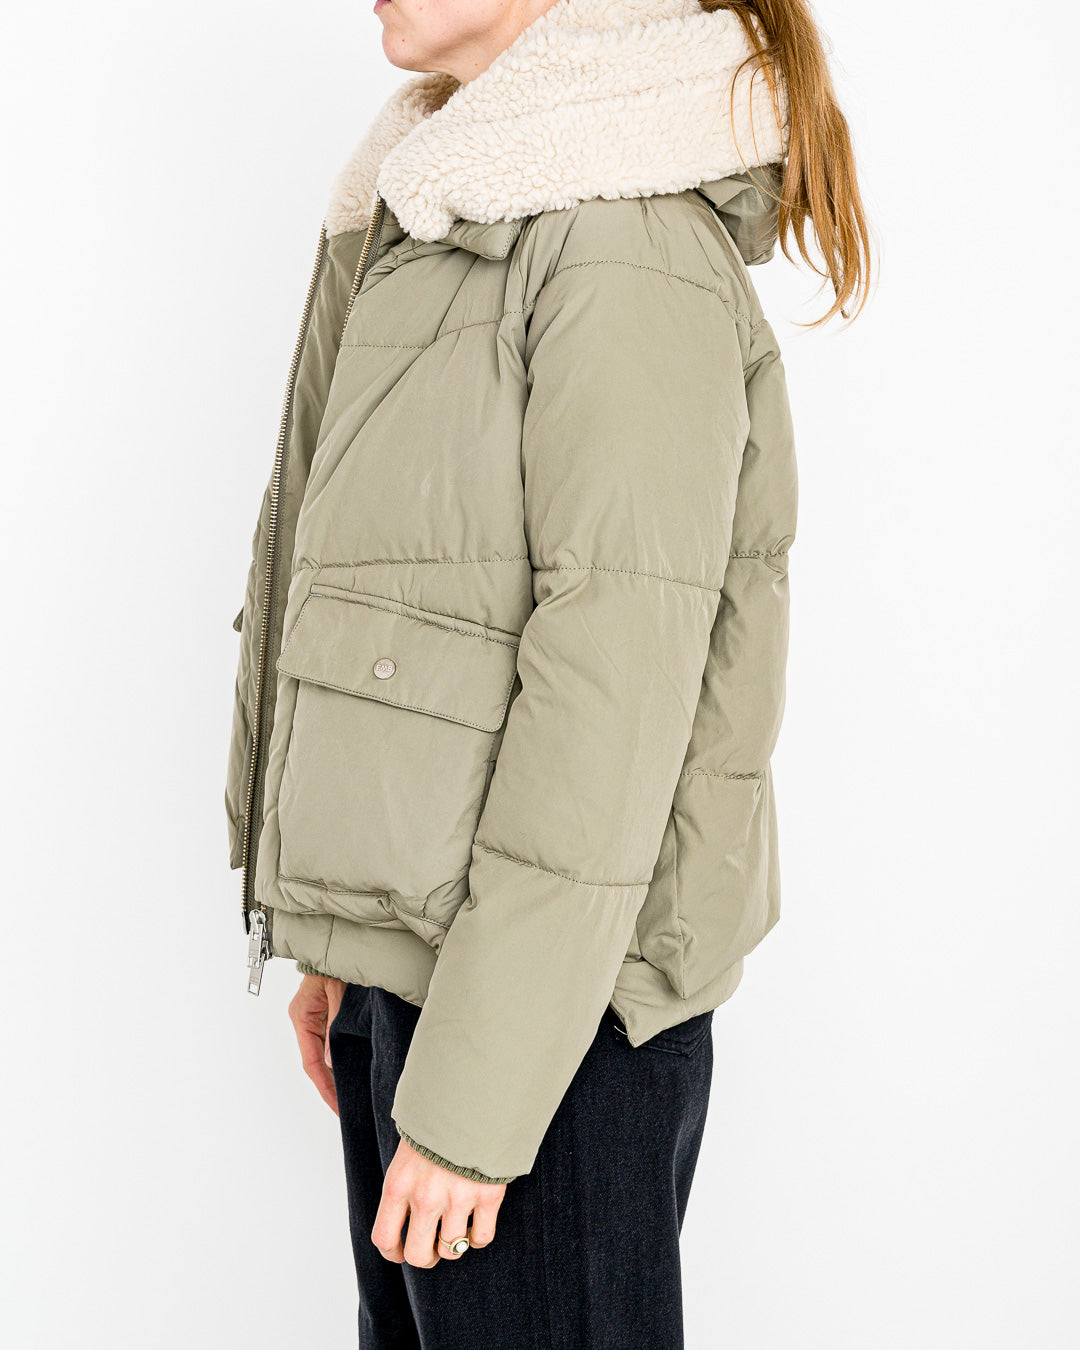 Embassy of Bricks and Logs // Vegane Winterjacke Leicester Pale Olive